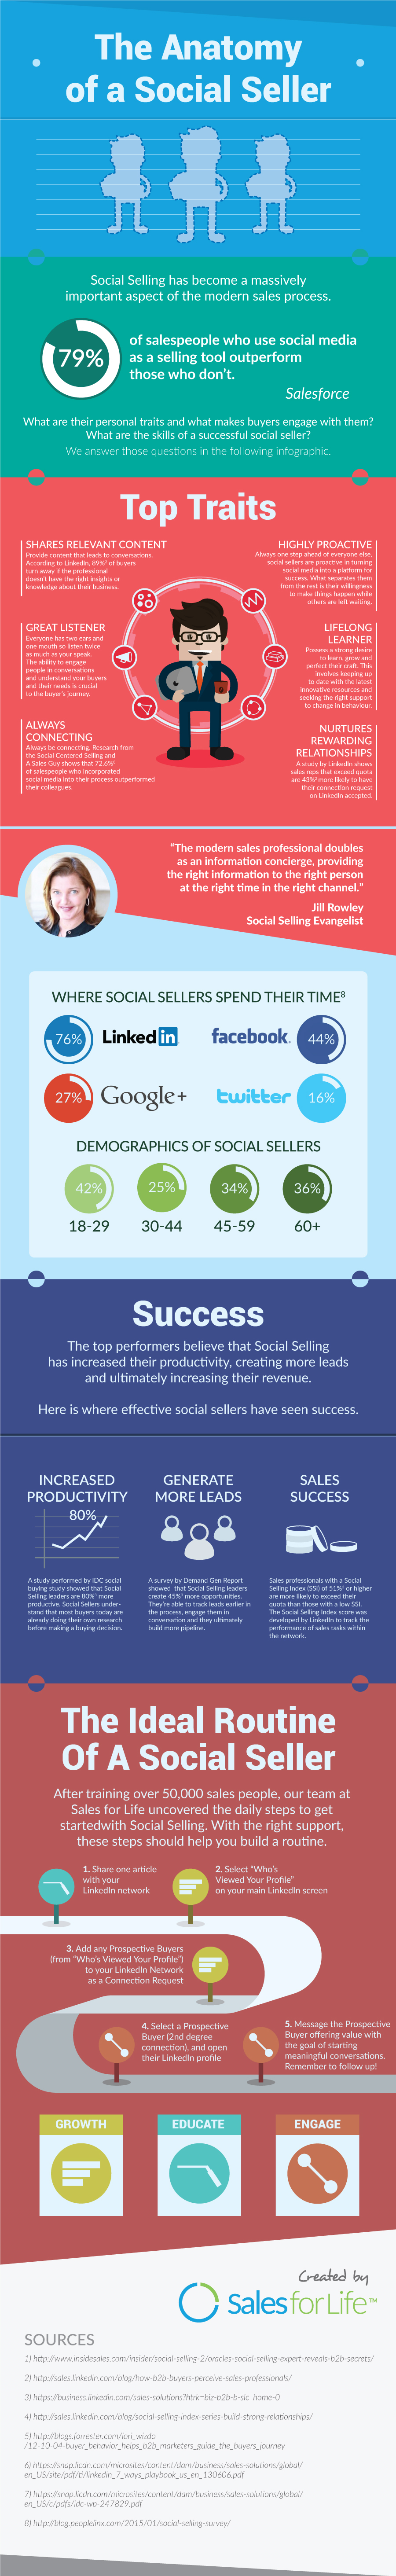 The Anatomy Of A Social Seller [Infographic]